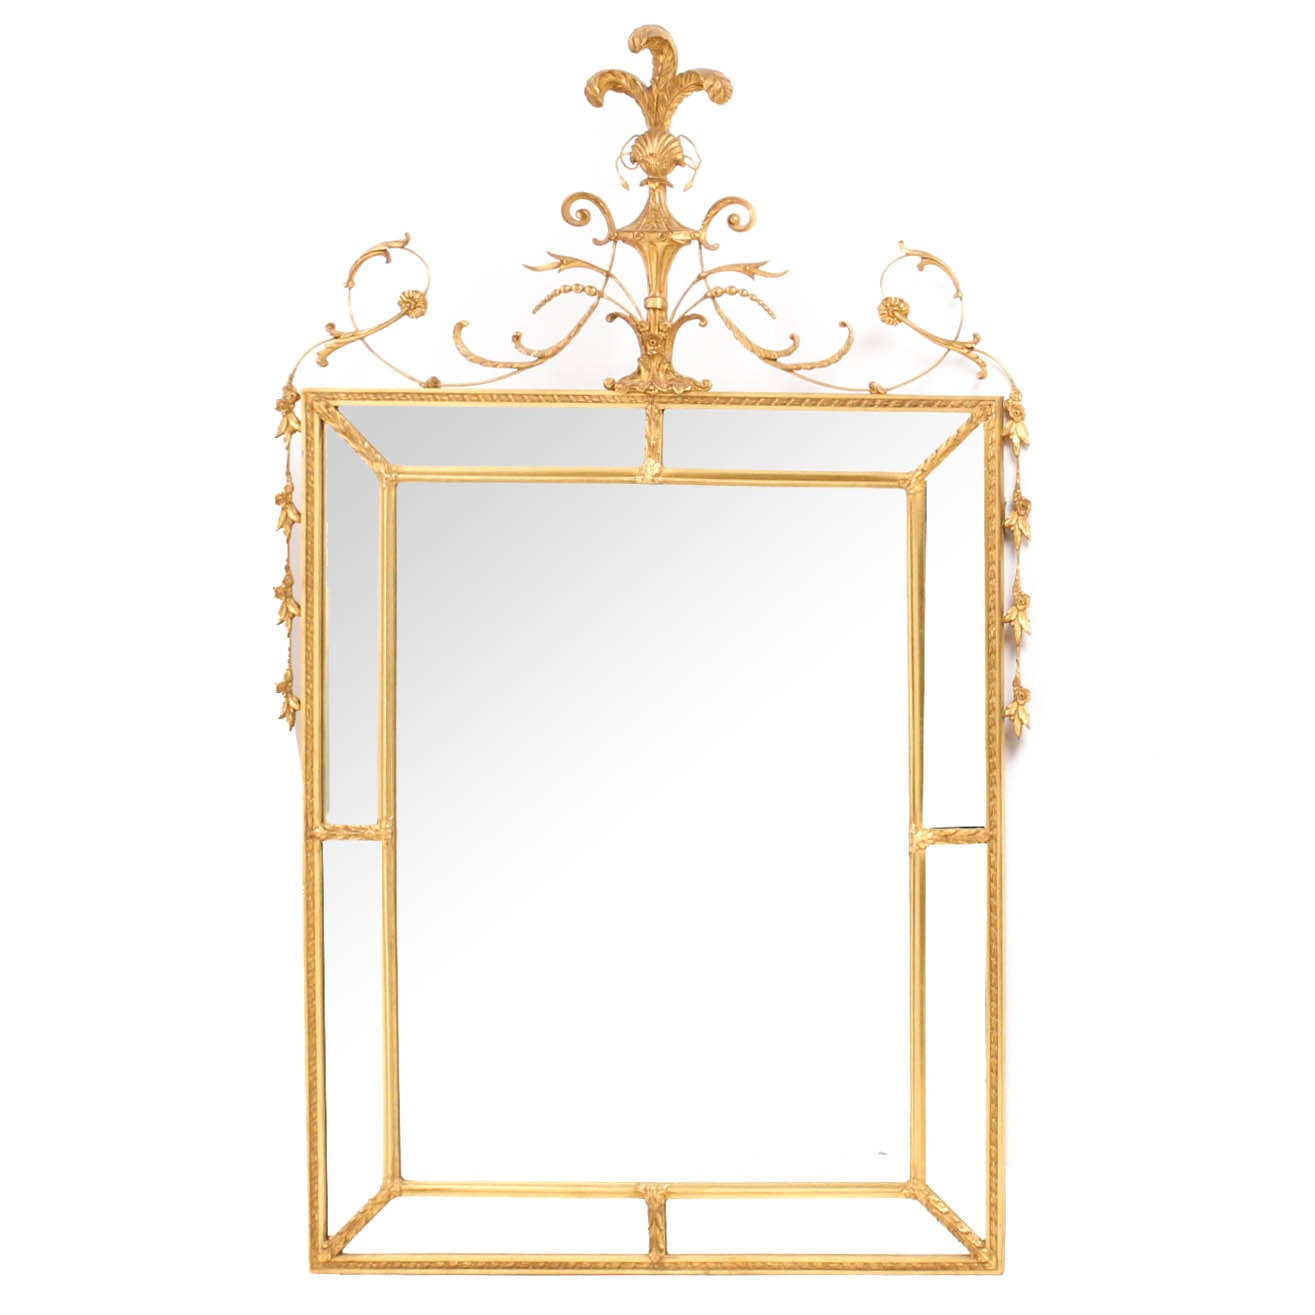 Carver's Guild Neo Classic Wall Mirror